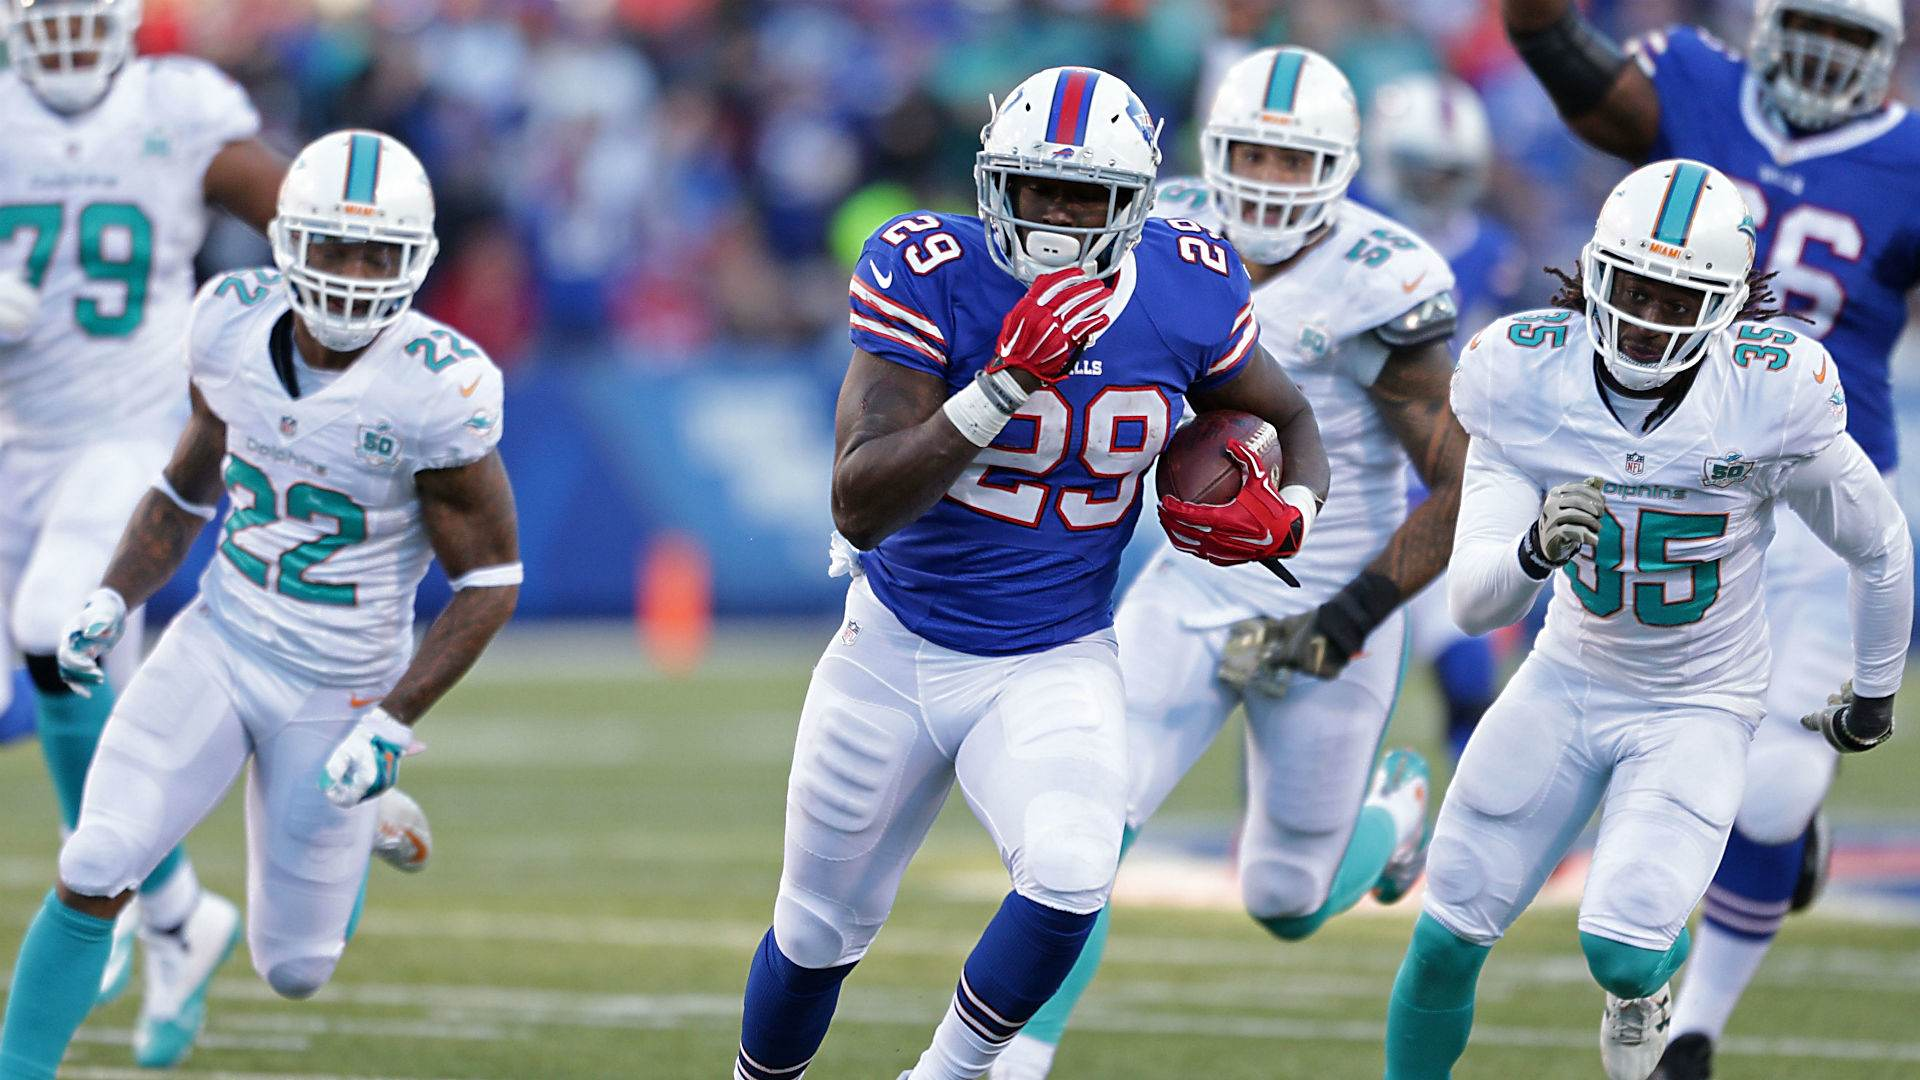 Cowboys FA: RB Karlos Williams An Interesting Target